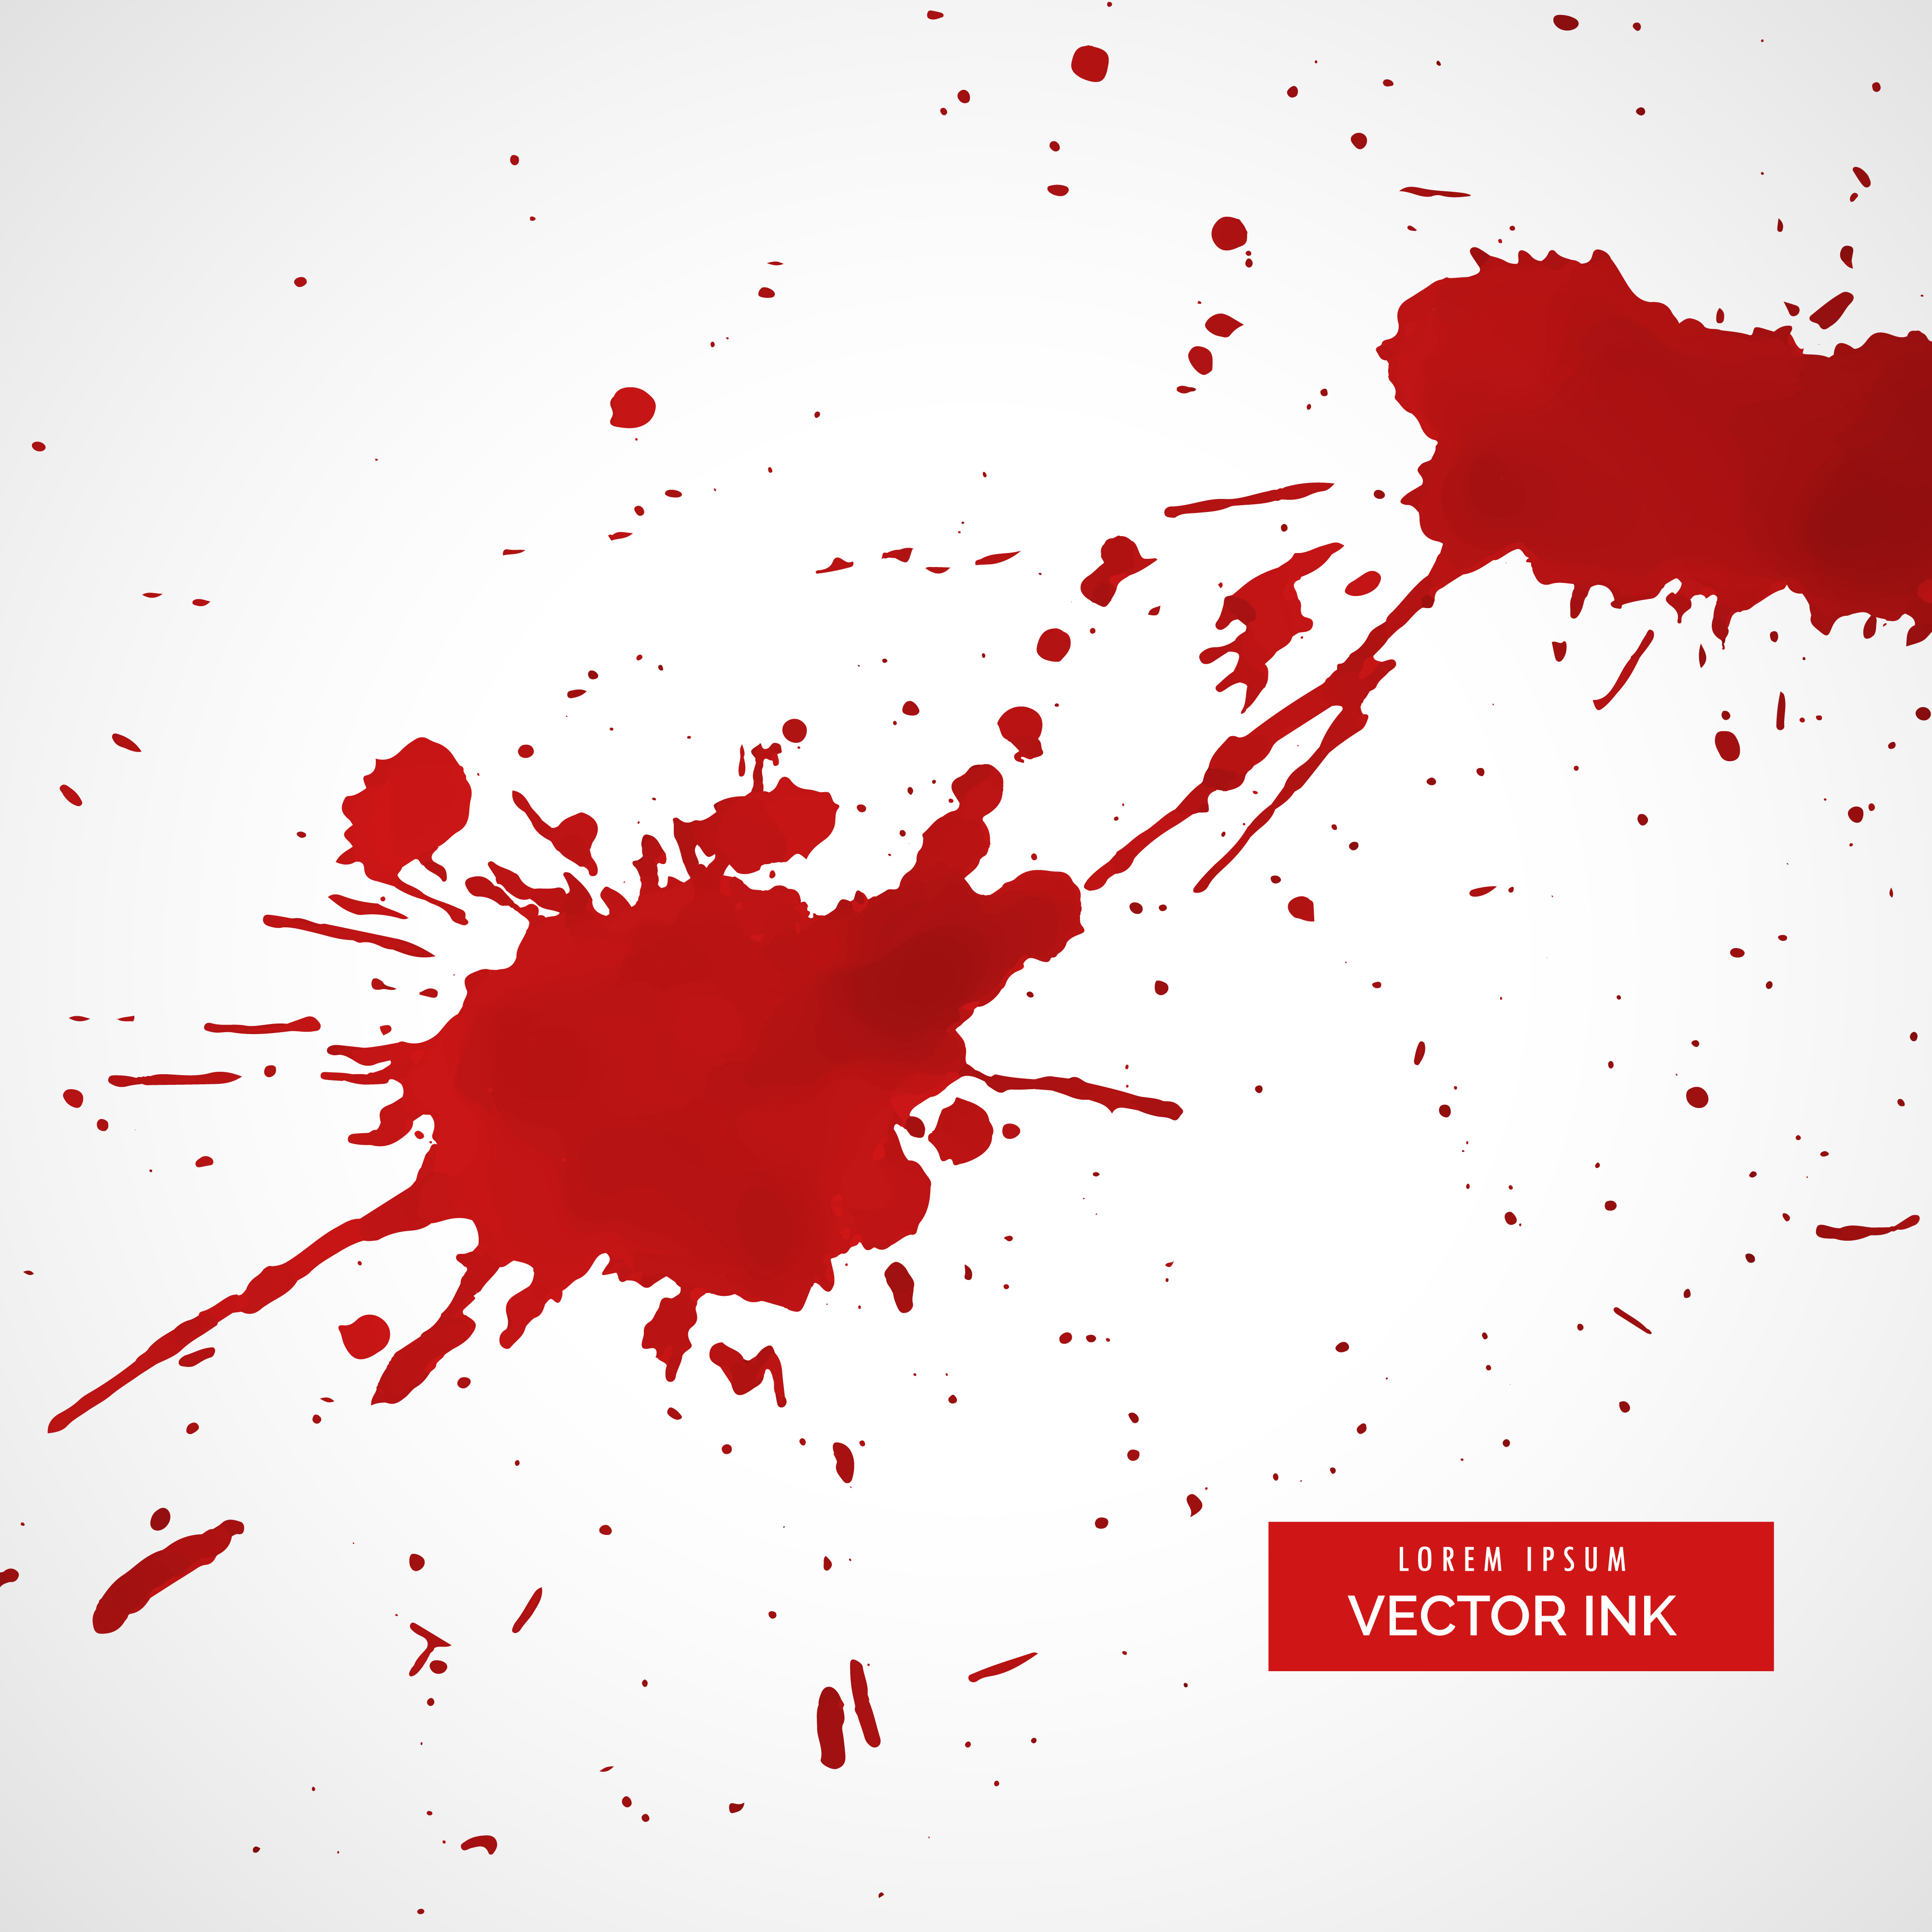 red ink splatter texture stain background download free